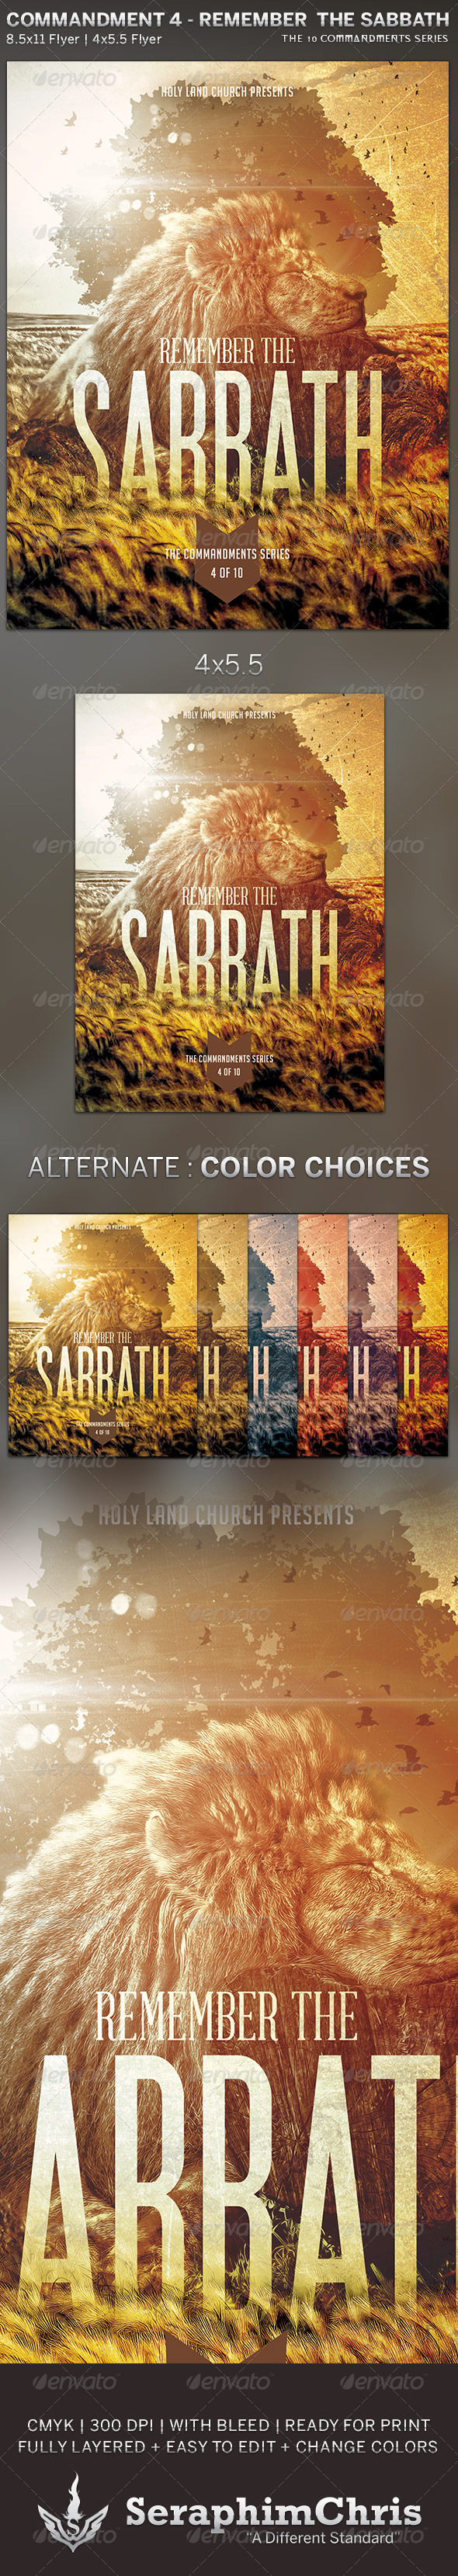 GraphicRiver Remember the Sabbath Church Flyer Template 5815936